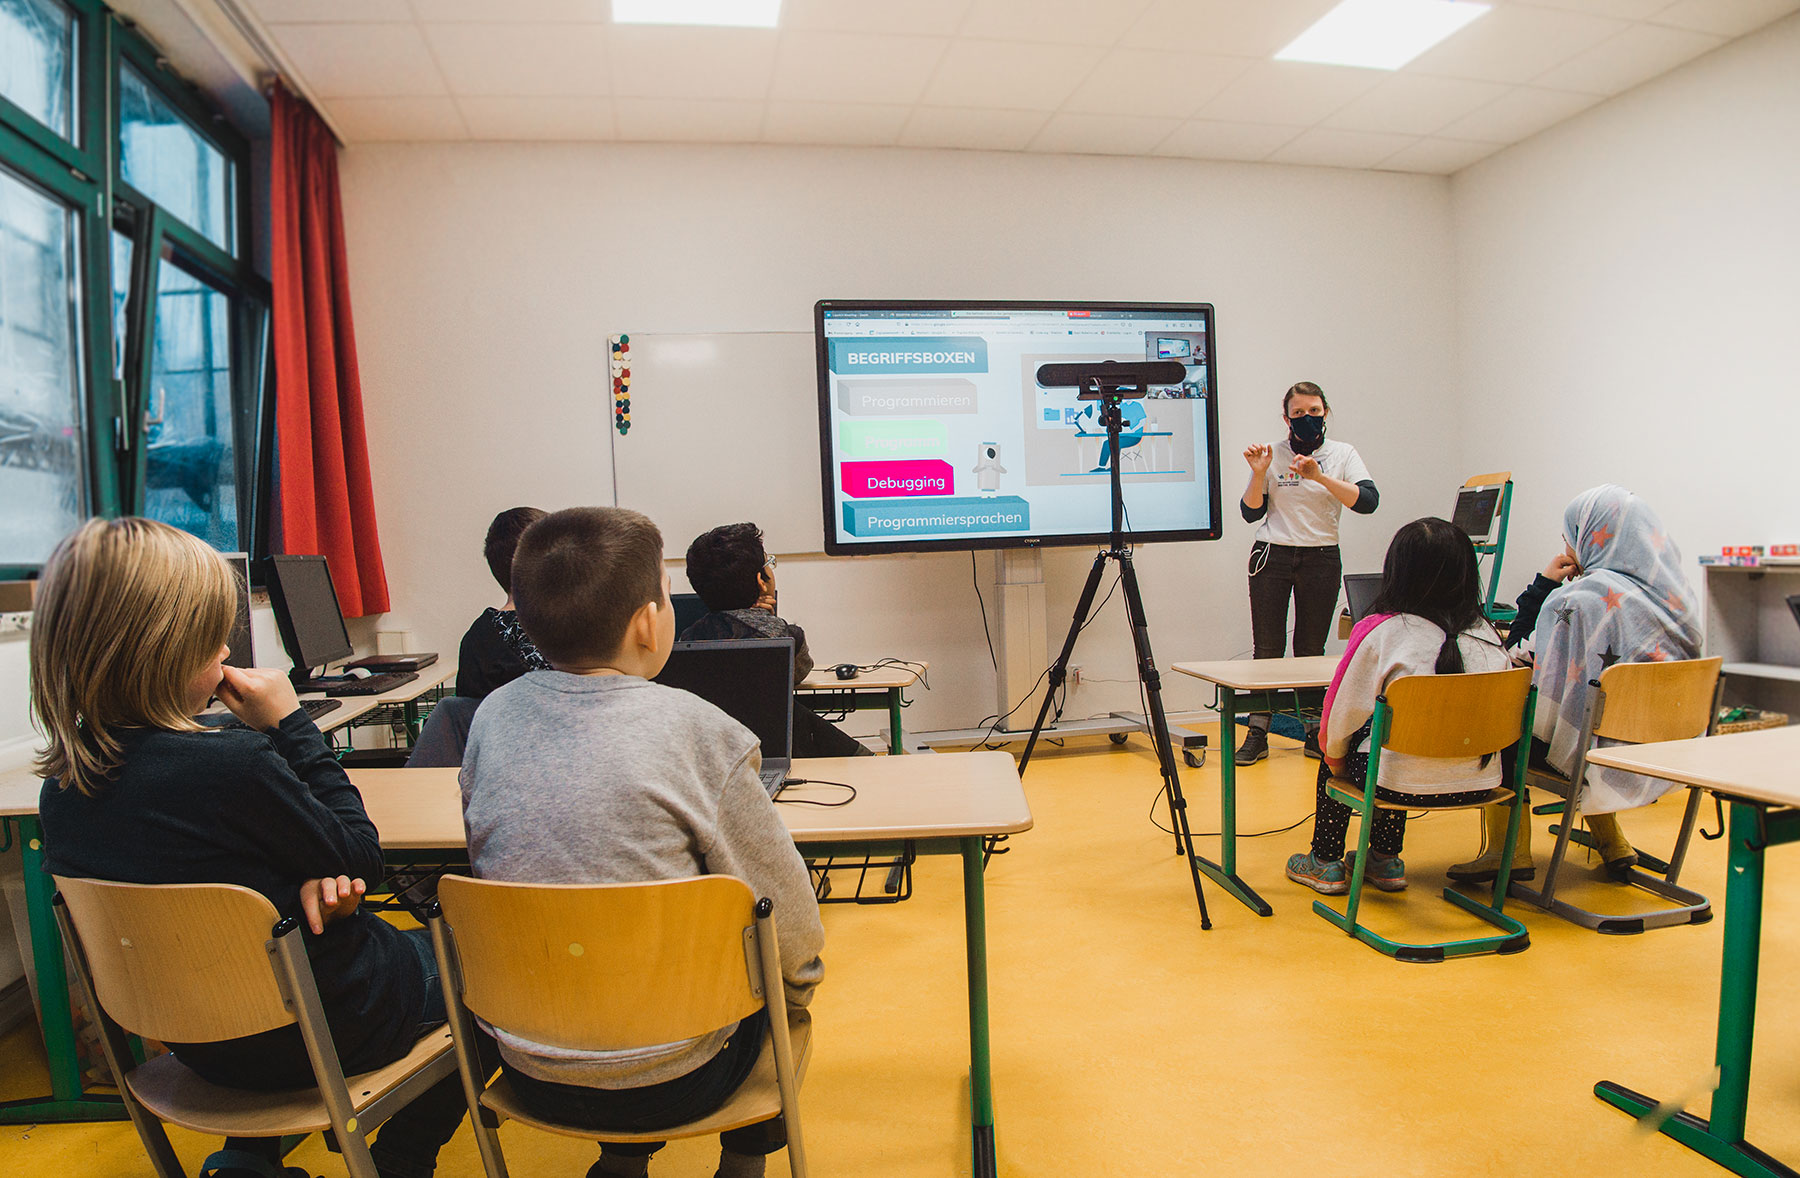 Hybrid teaching with video conferencing equipment